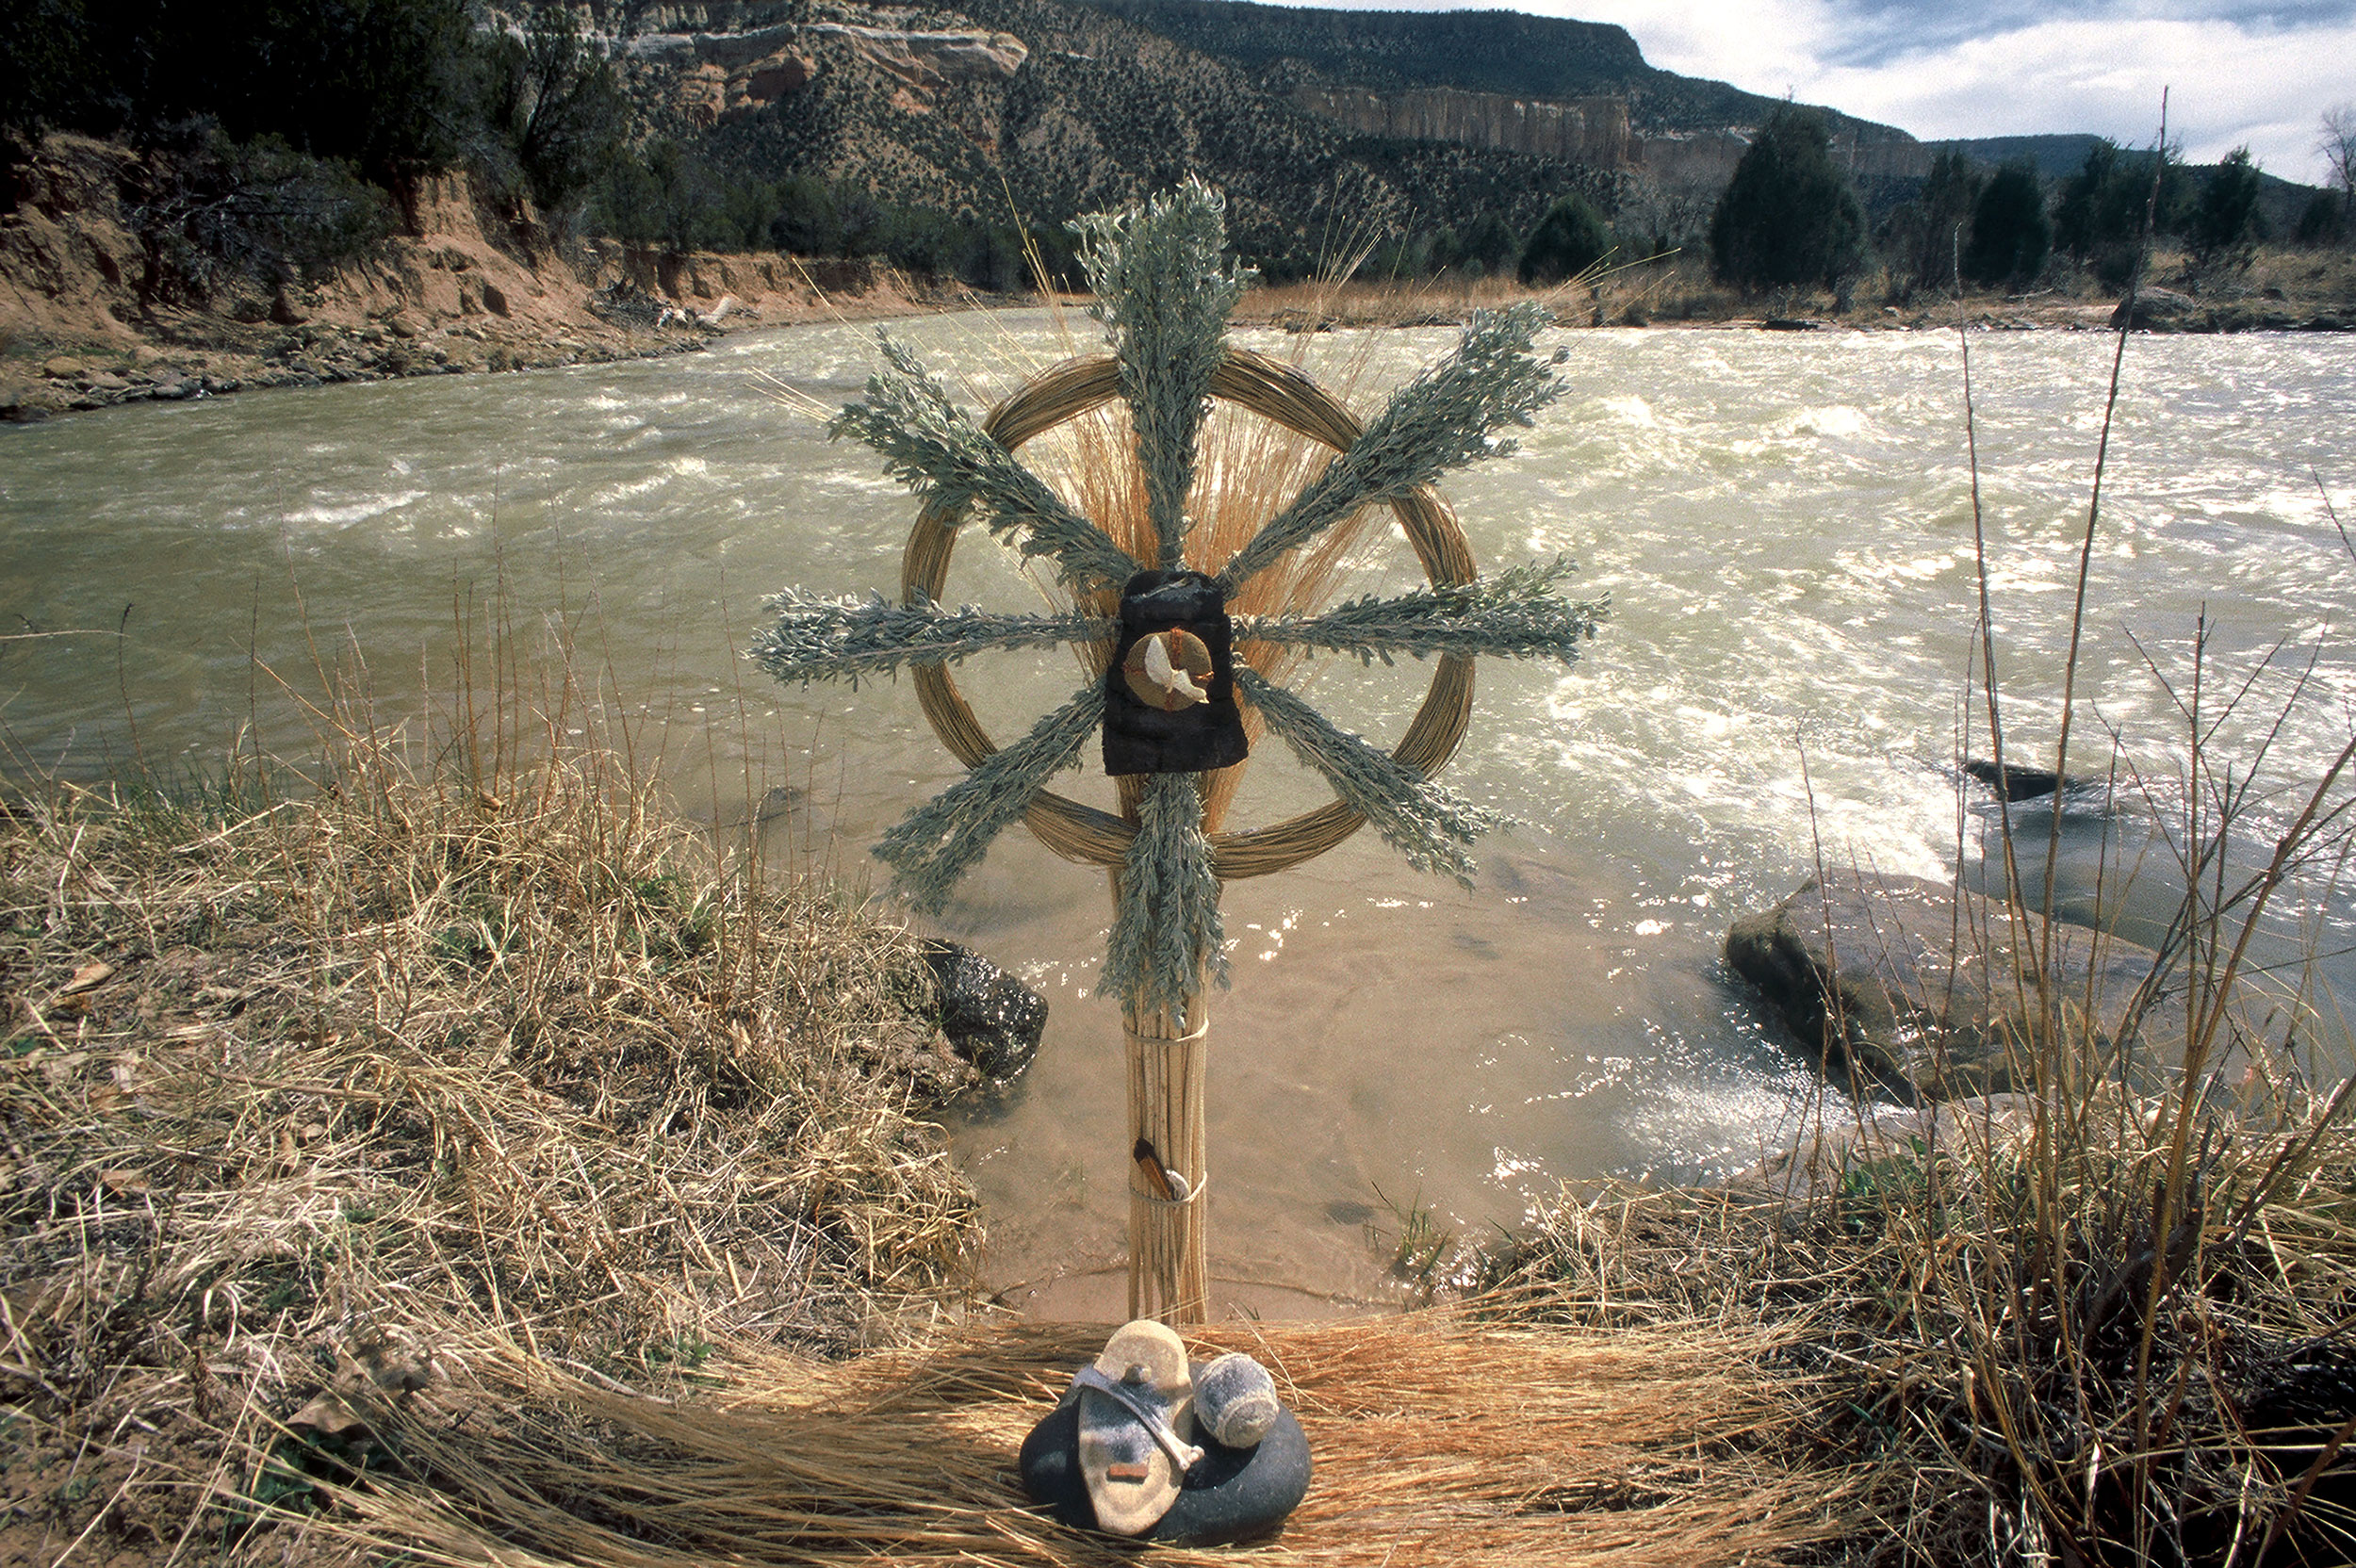 Chama River, Christ in the Desert Monastery, NM